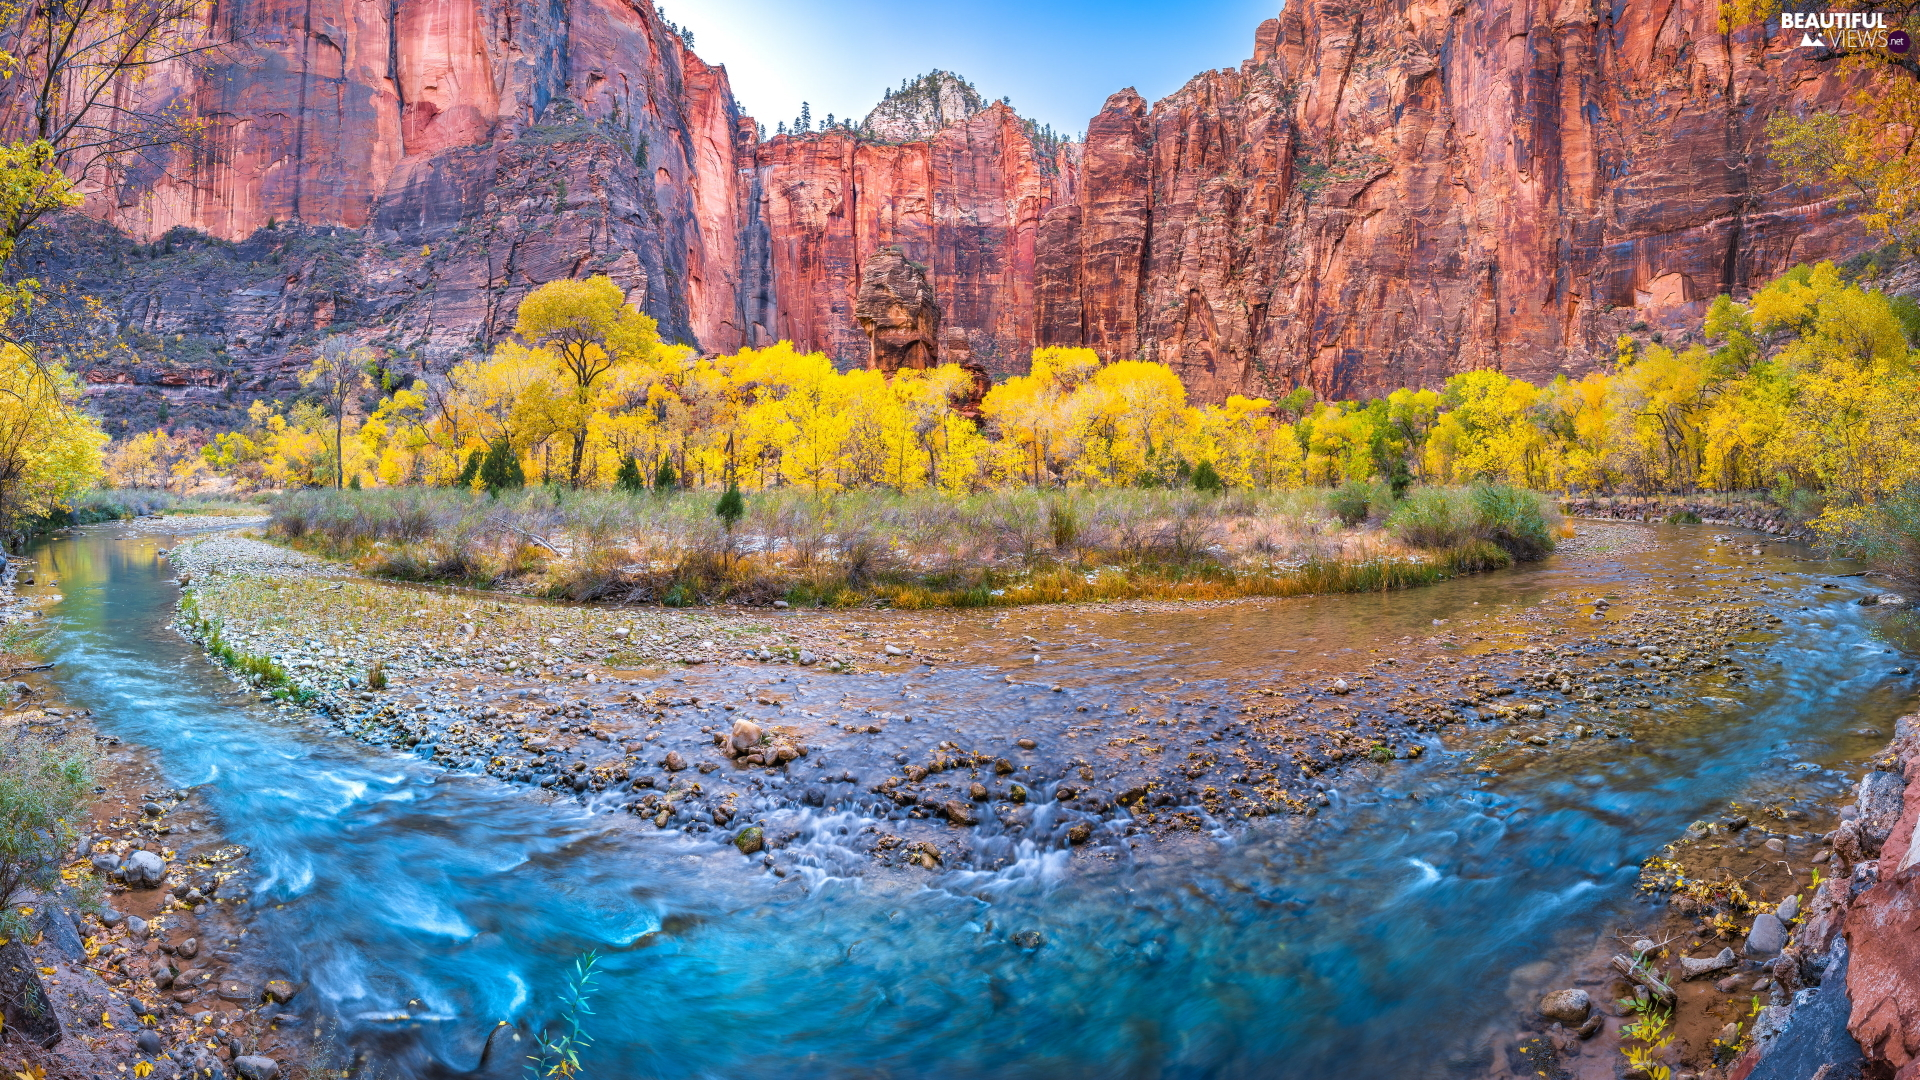 viewes, rocks, Utah State, trees, Zion National Park, River, The United States